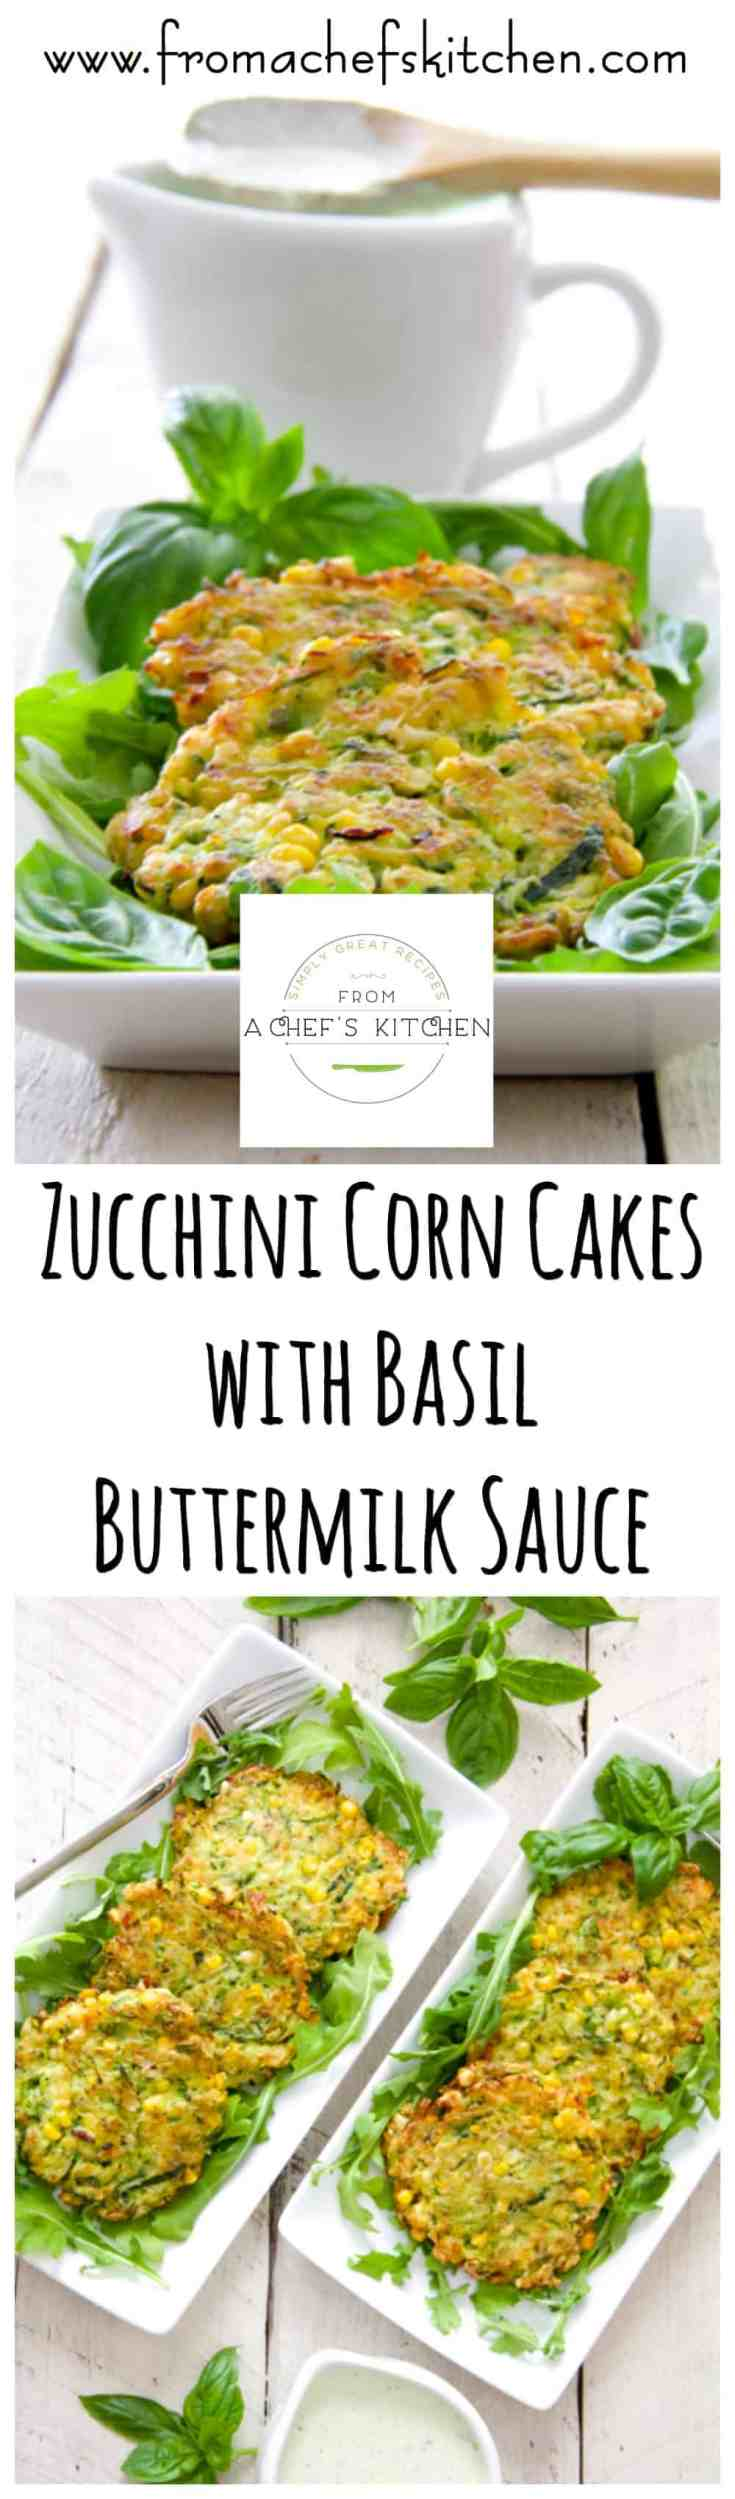 Zucchini Corn Cakes with Basil Buttermilk Sauce is a delicious way to use up an abundance of zucchini. Best of all, they're freezer-friendly! #zucchinirecipes #zucchinicakes #vegetable #vegetablerecipes #vegetarian #vegetarianrecipes